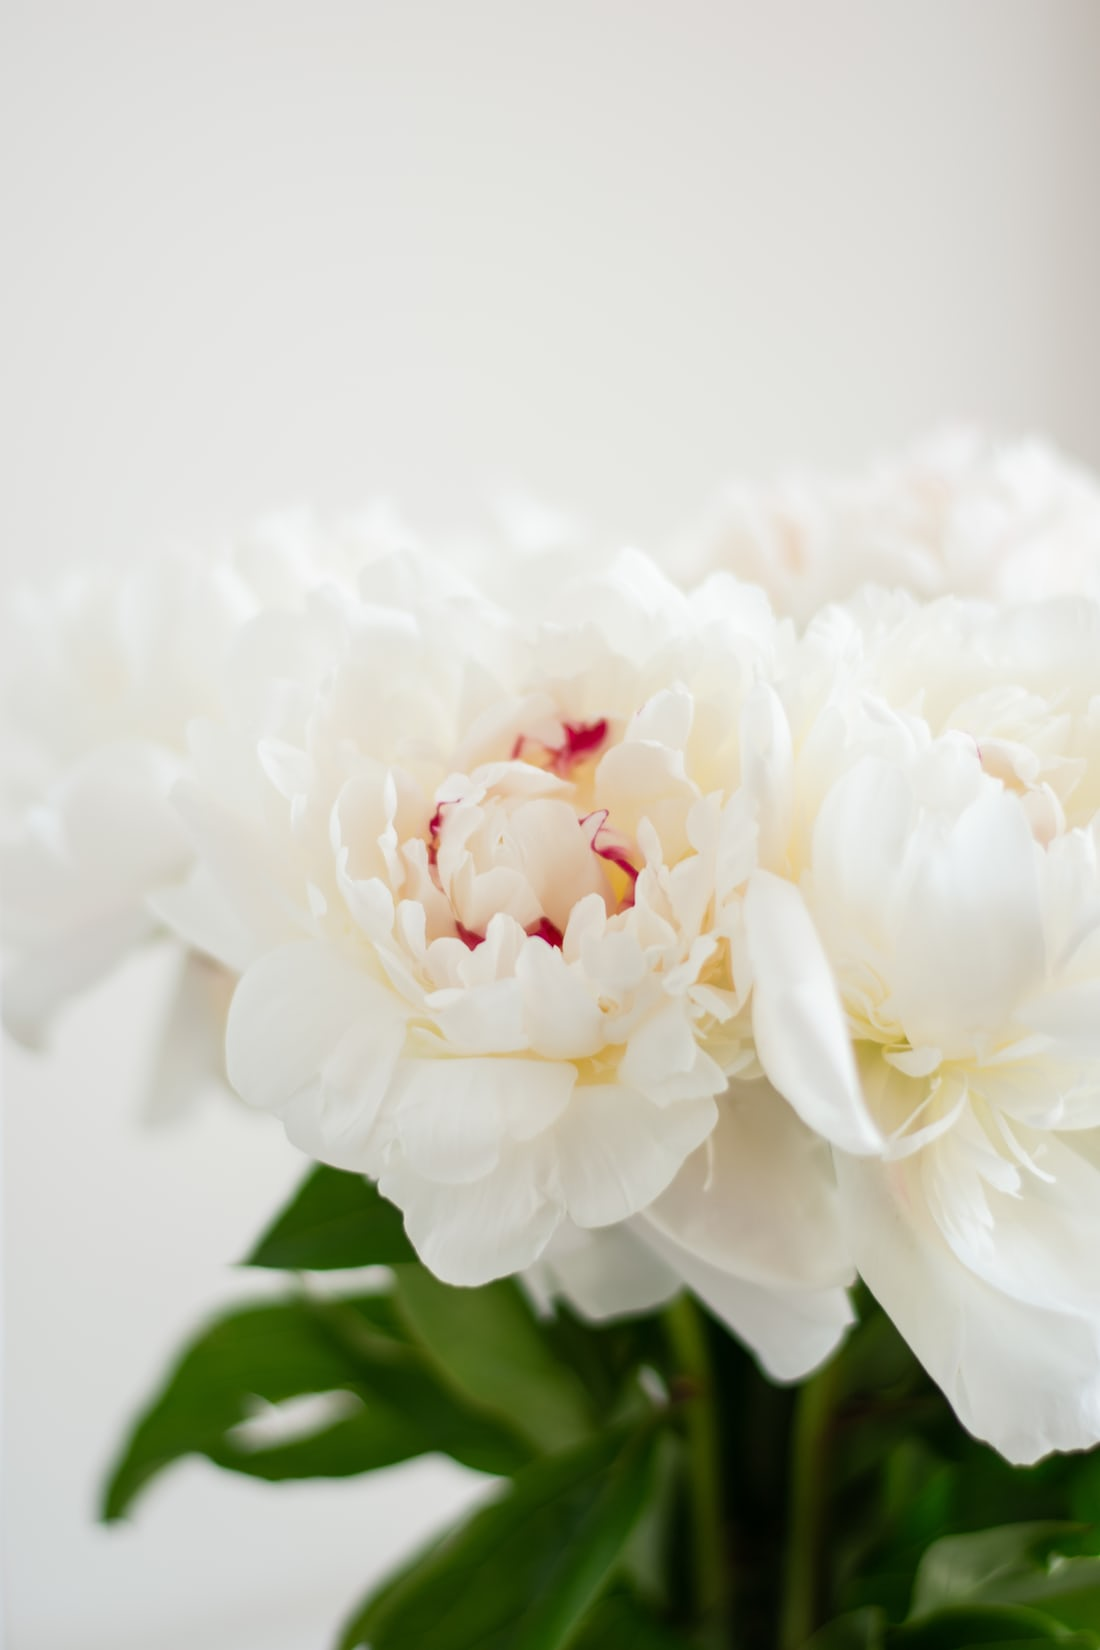 FRESH CUT PEONIES IN ROUND BOX